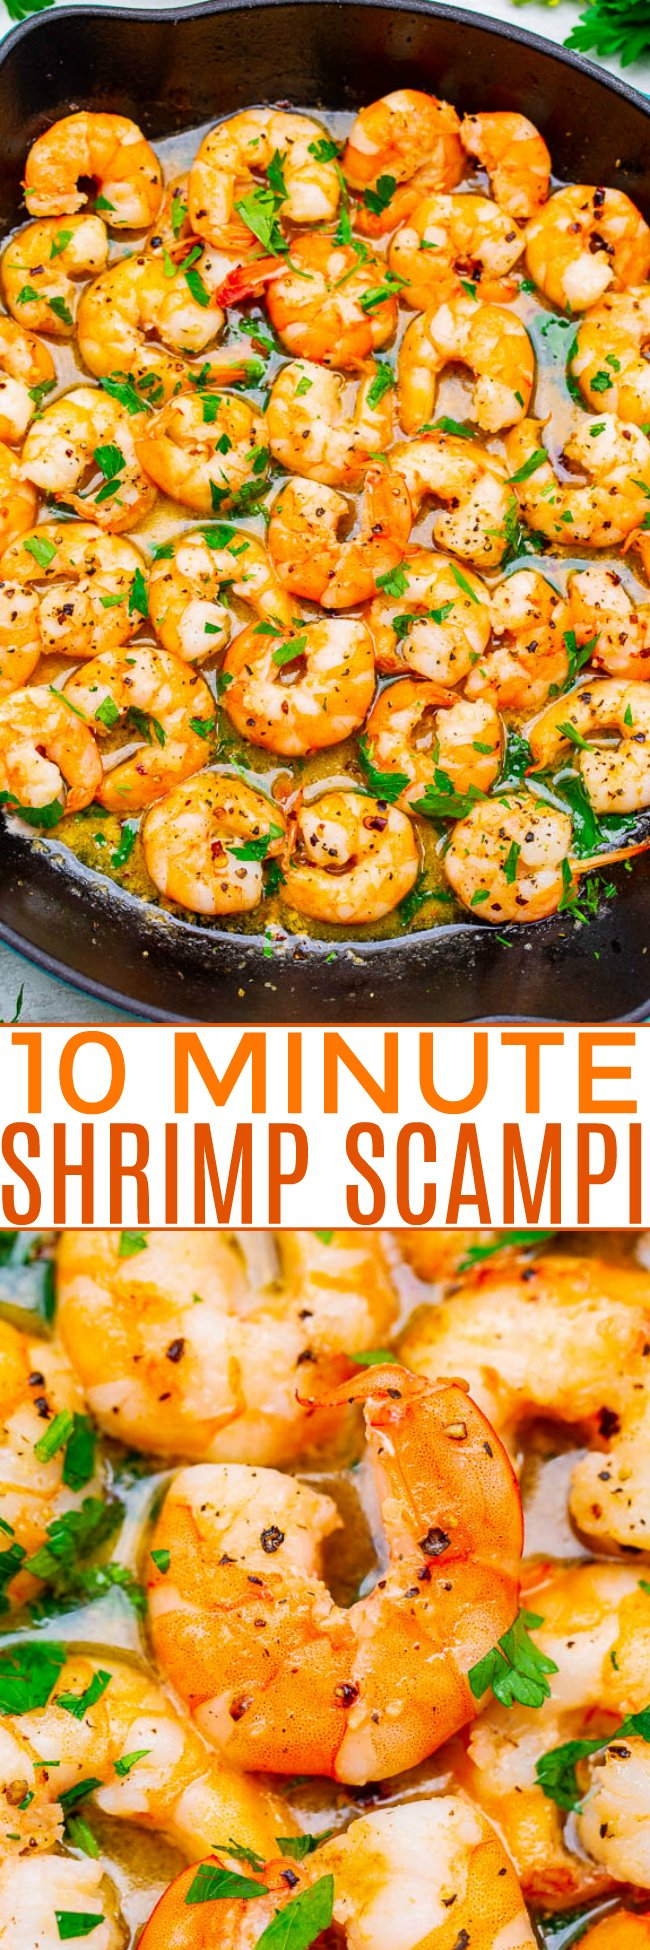 10-Minute Easy Shrimp Scampi - If you thought shrimp scampi was just a dish to order out at a fancier restaurant, think again. You can make mouth-watering shrimp scampi at home in less than 10 minutes!!